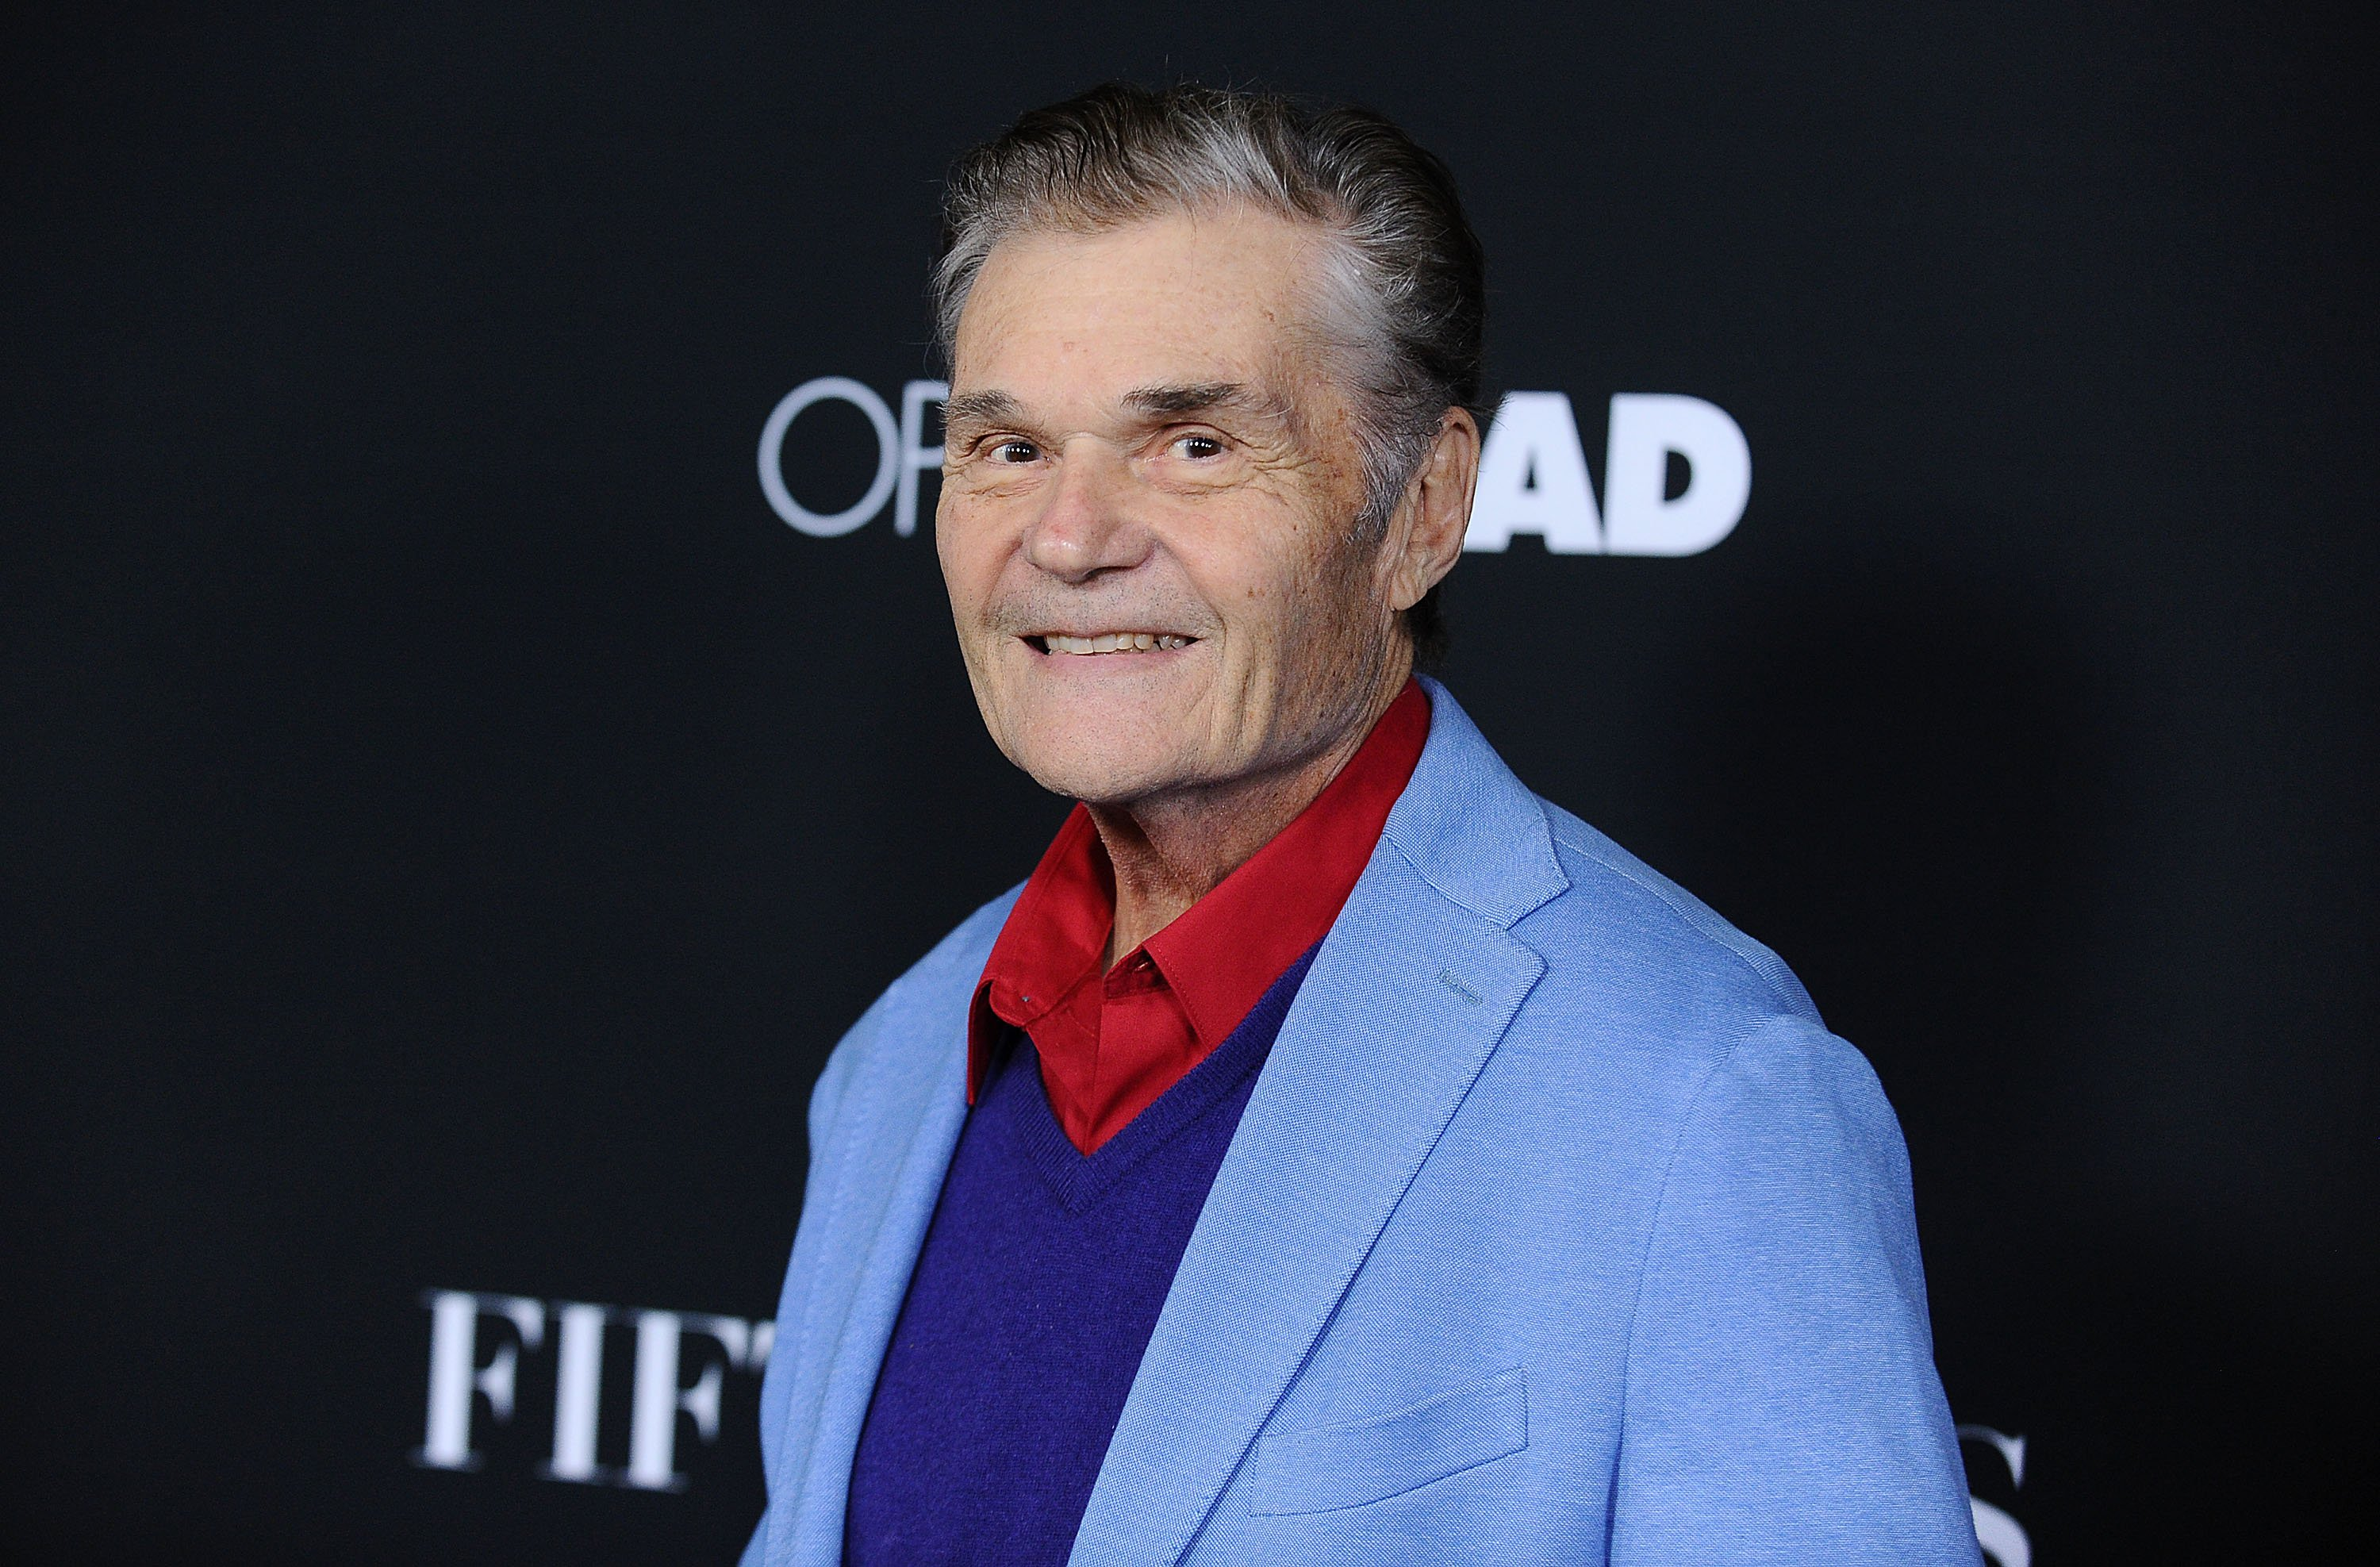 Image Credits: Getty Images | Fred Willard passed away on May 15